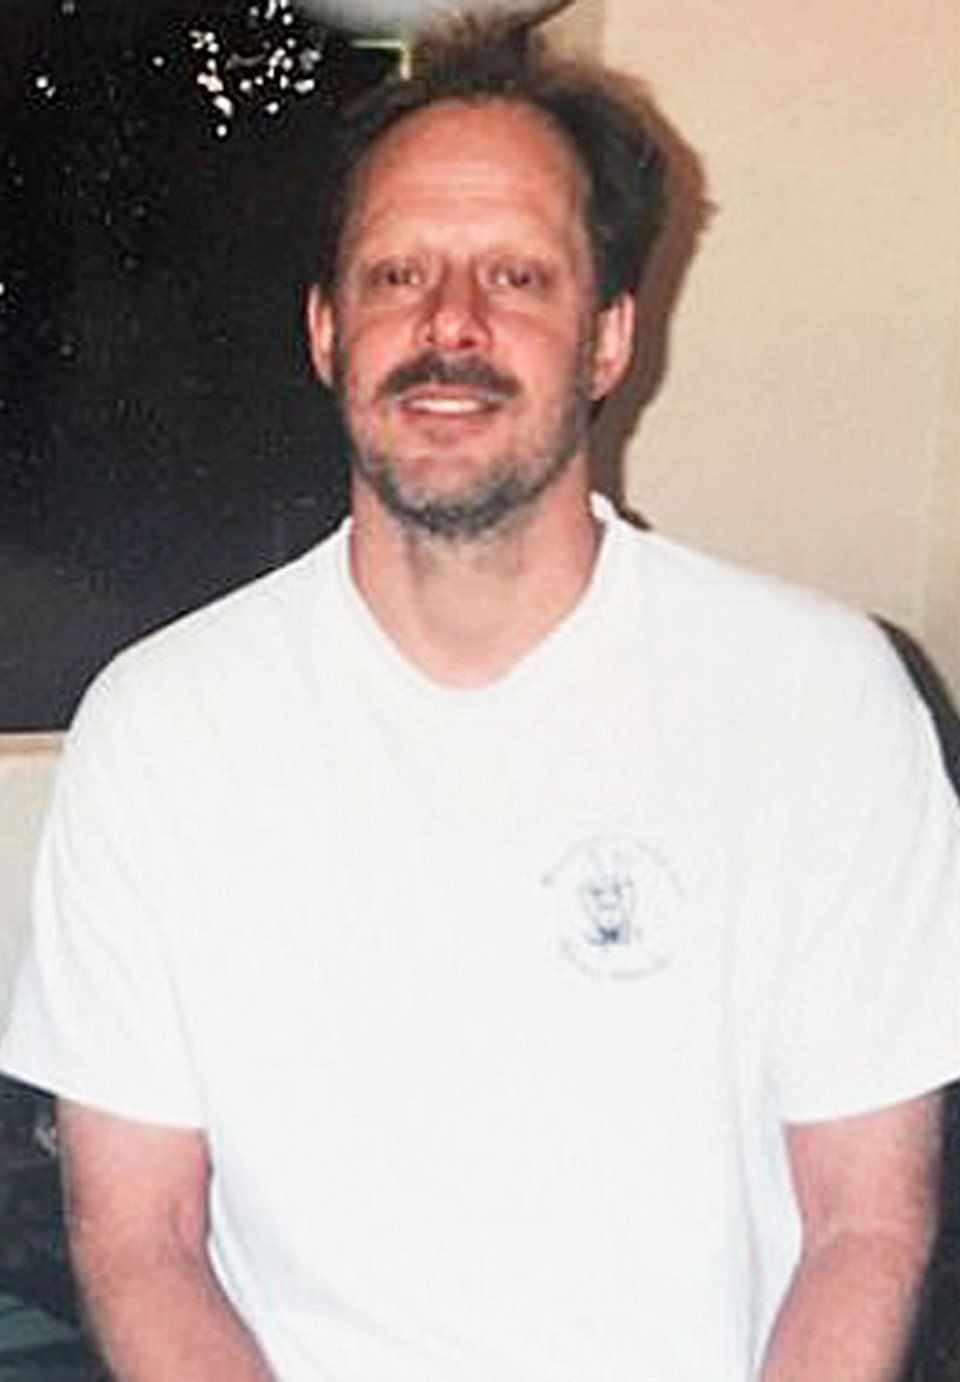 Las Vegas Shooter Was Known To Verbally Abuse His Girlfriend In